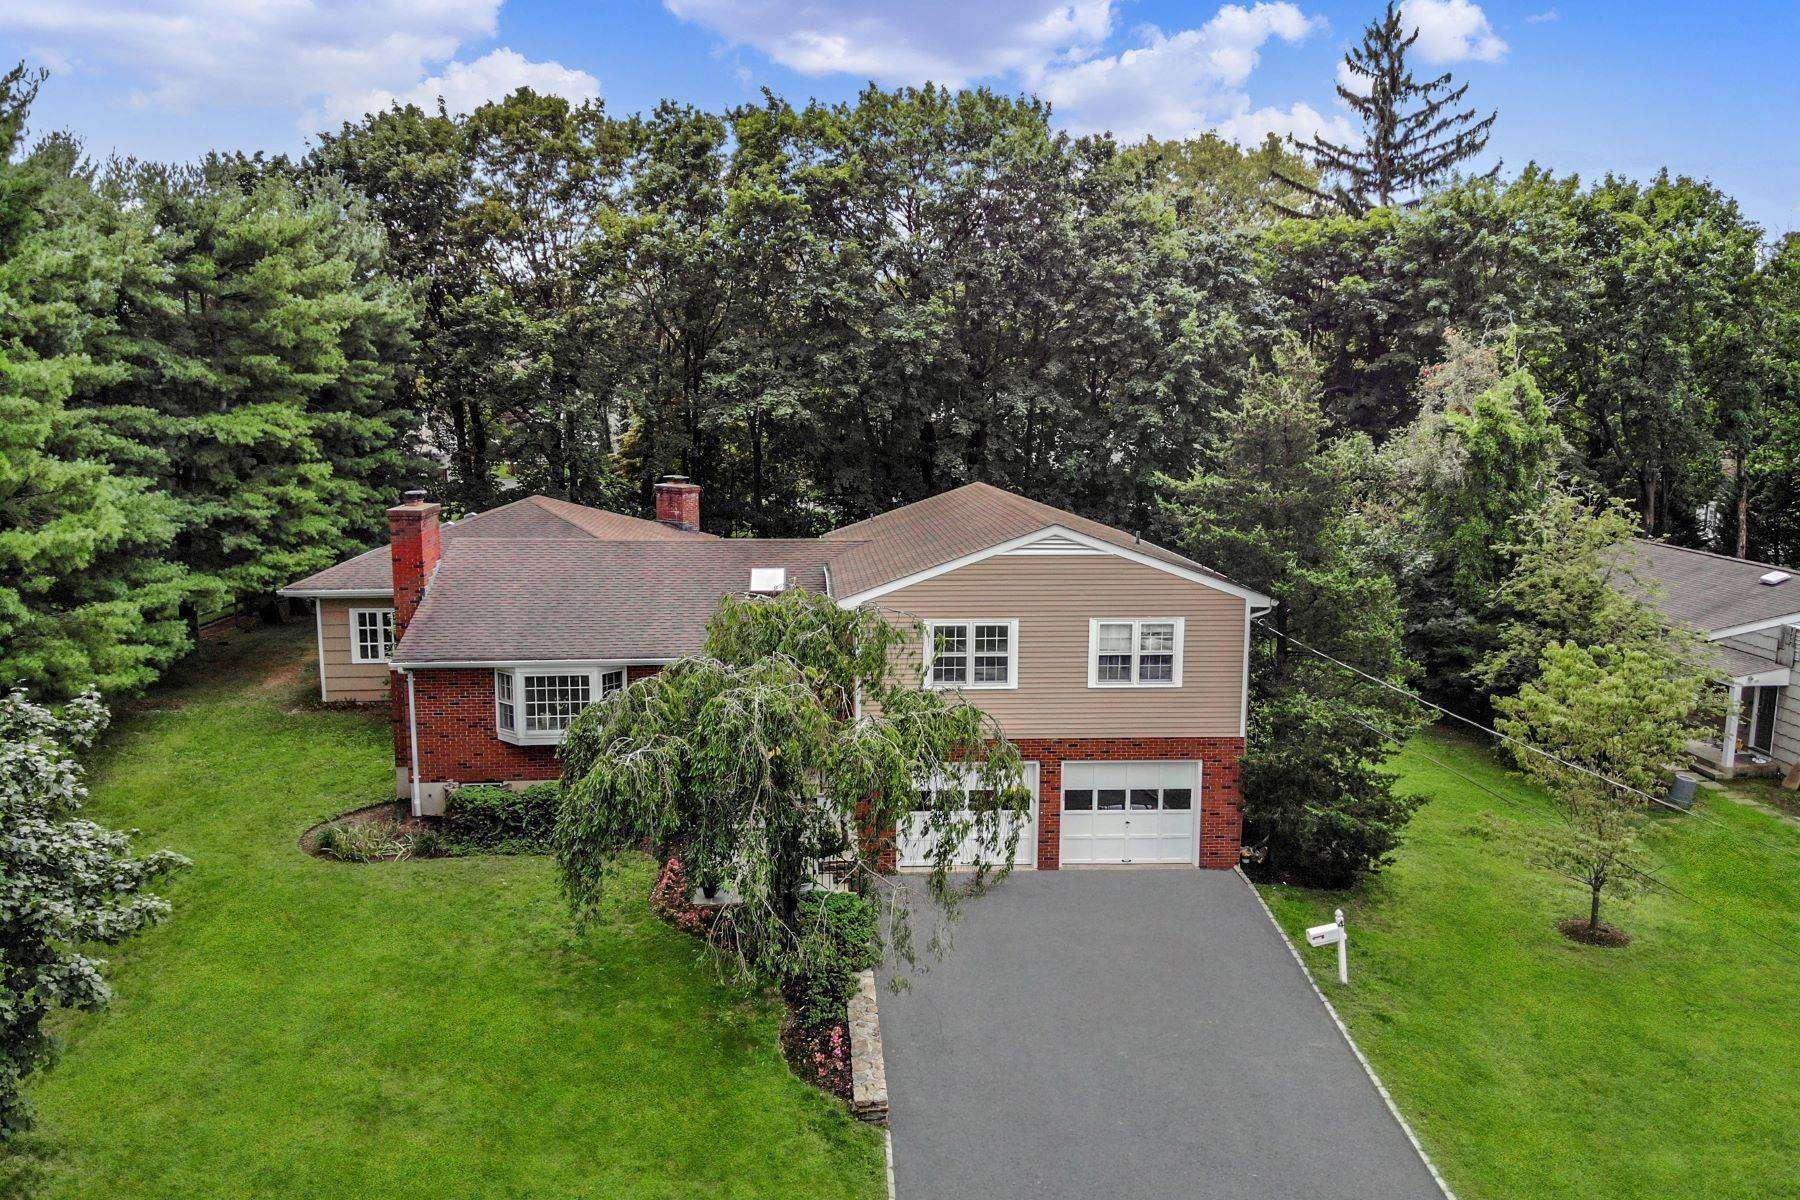 Single Family Homes for Sale at 4 Loch Lane Rye Brook, New York 10573 United States